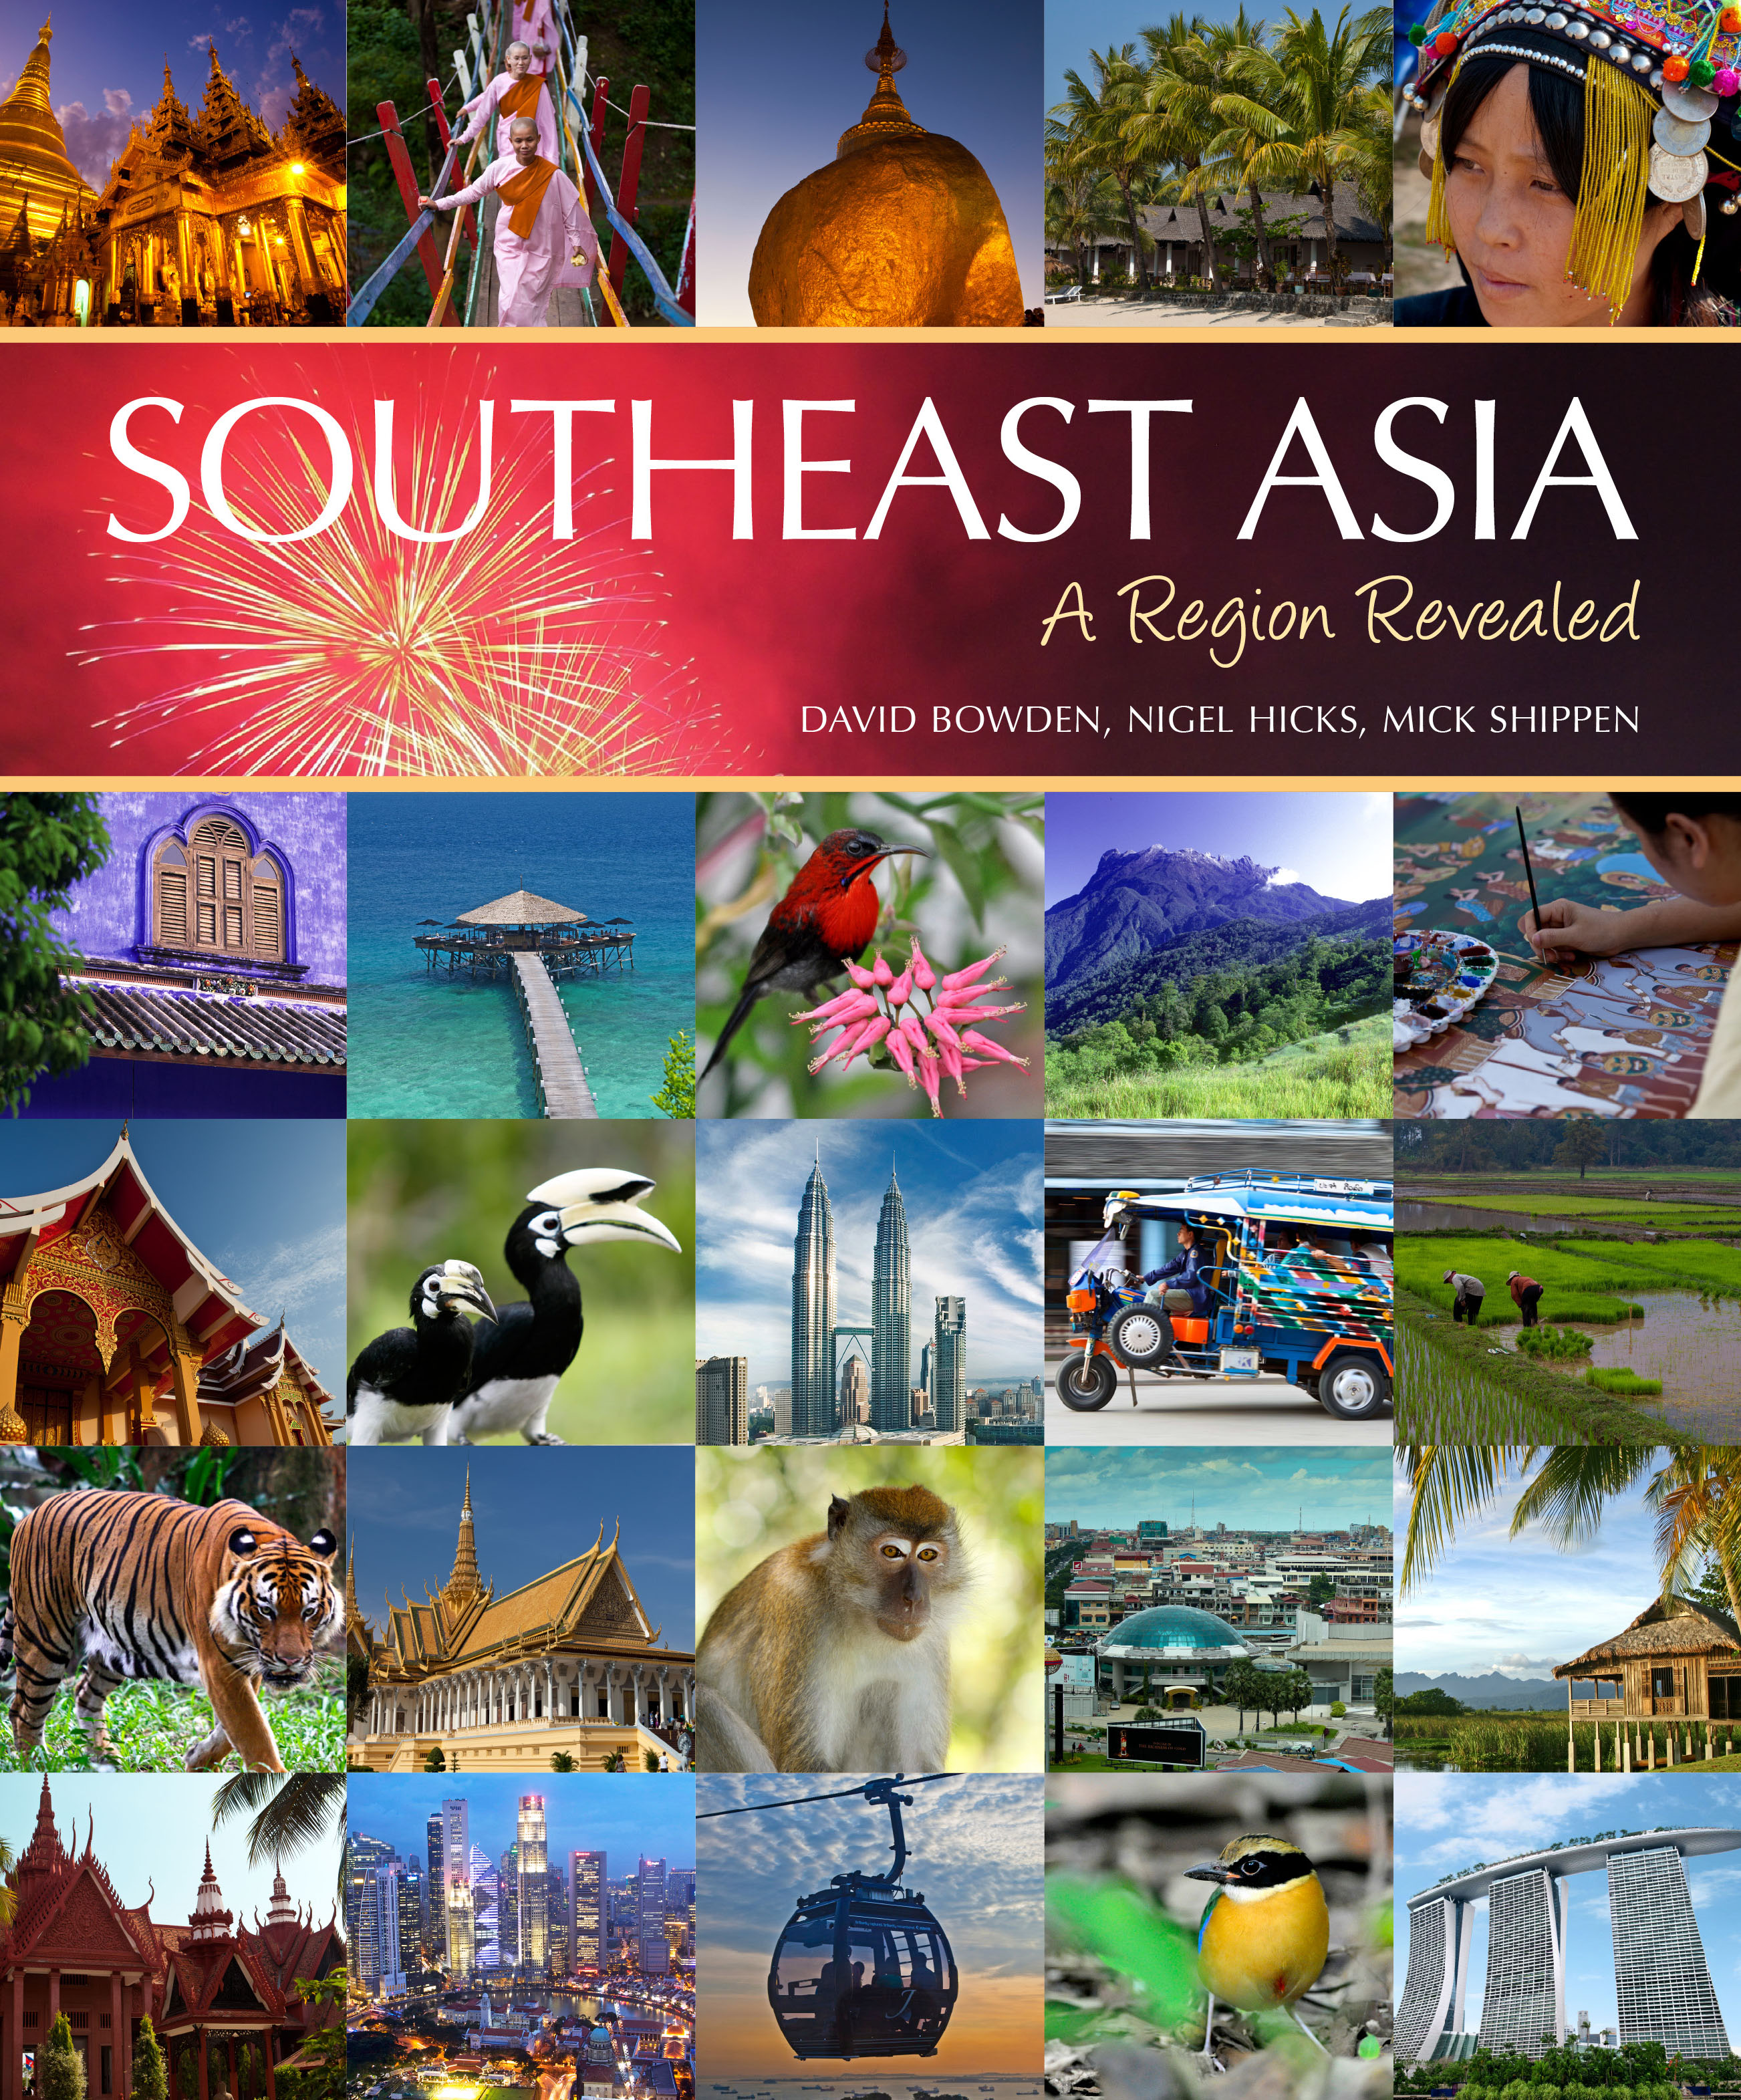 Southeast Asia: A Region Revealed